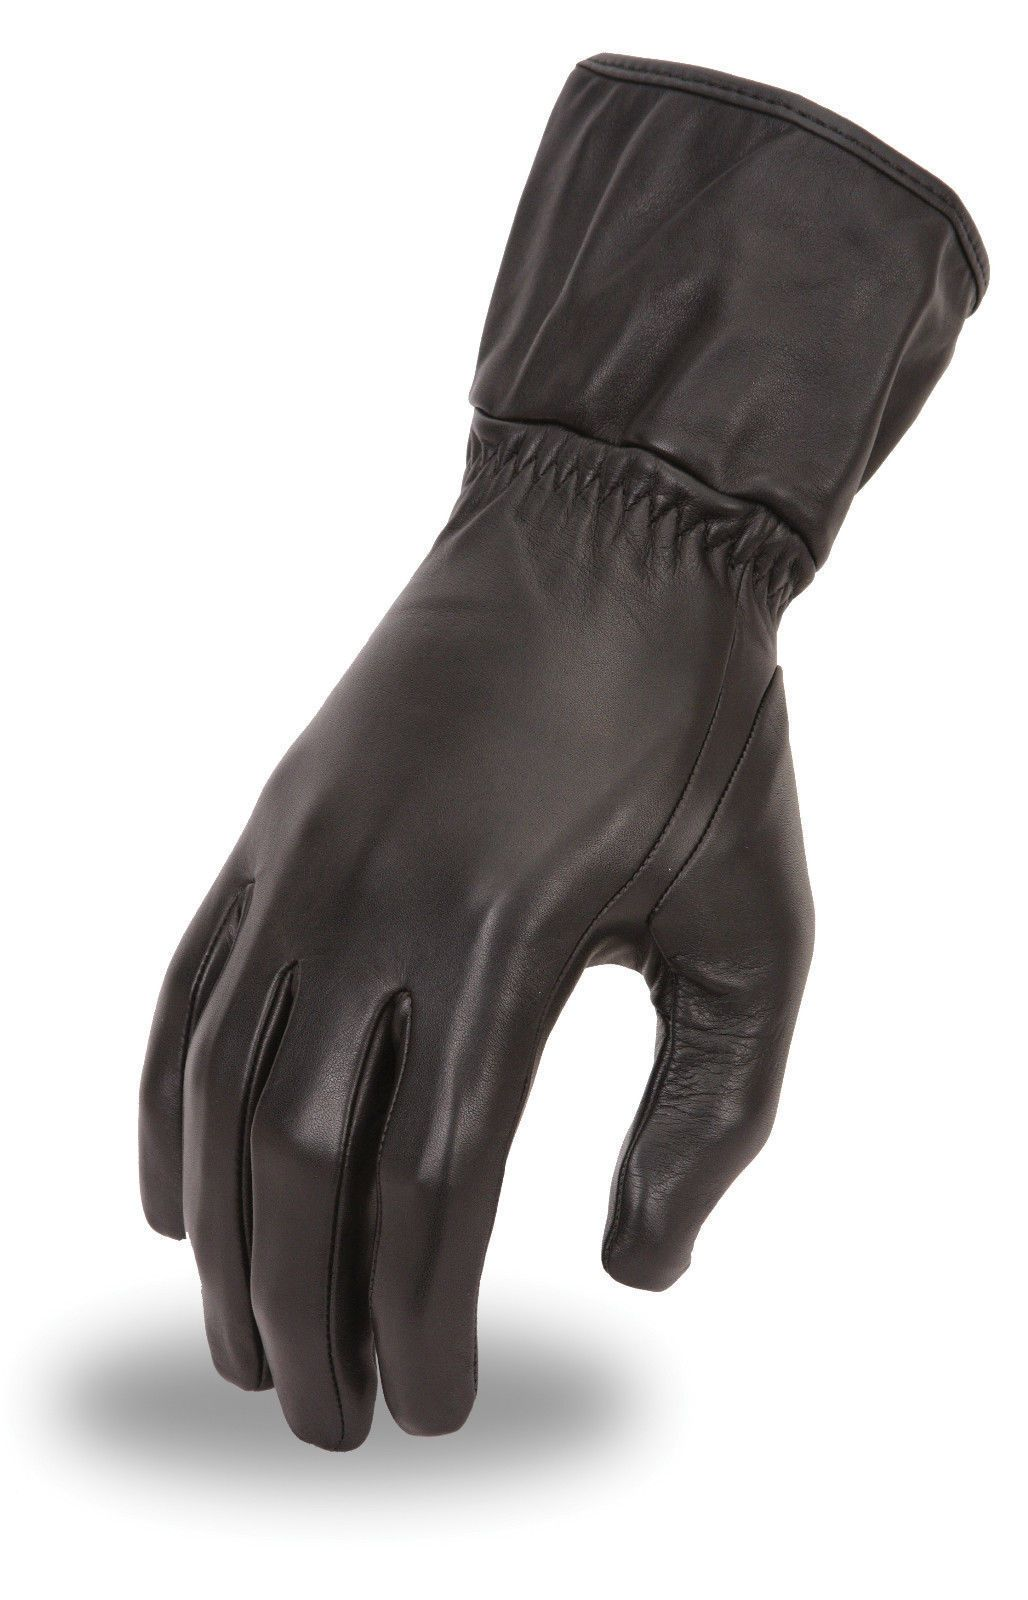 Womens leather biker gloves - Details About Womens Leather Motorcycle Gauntlet Riding Gloves W Cinch Tight Wrist Fi122gl